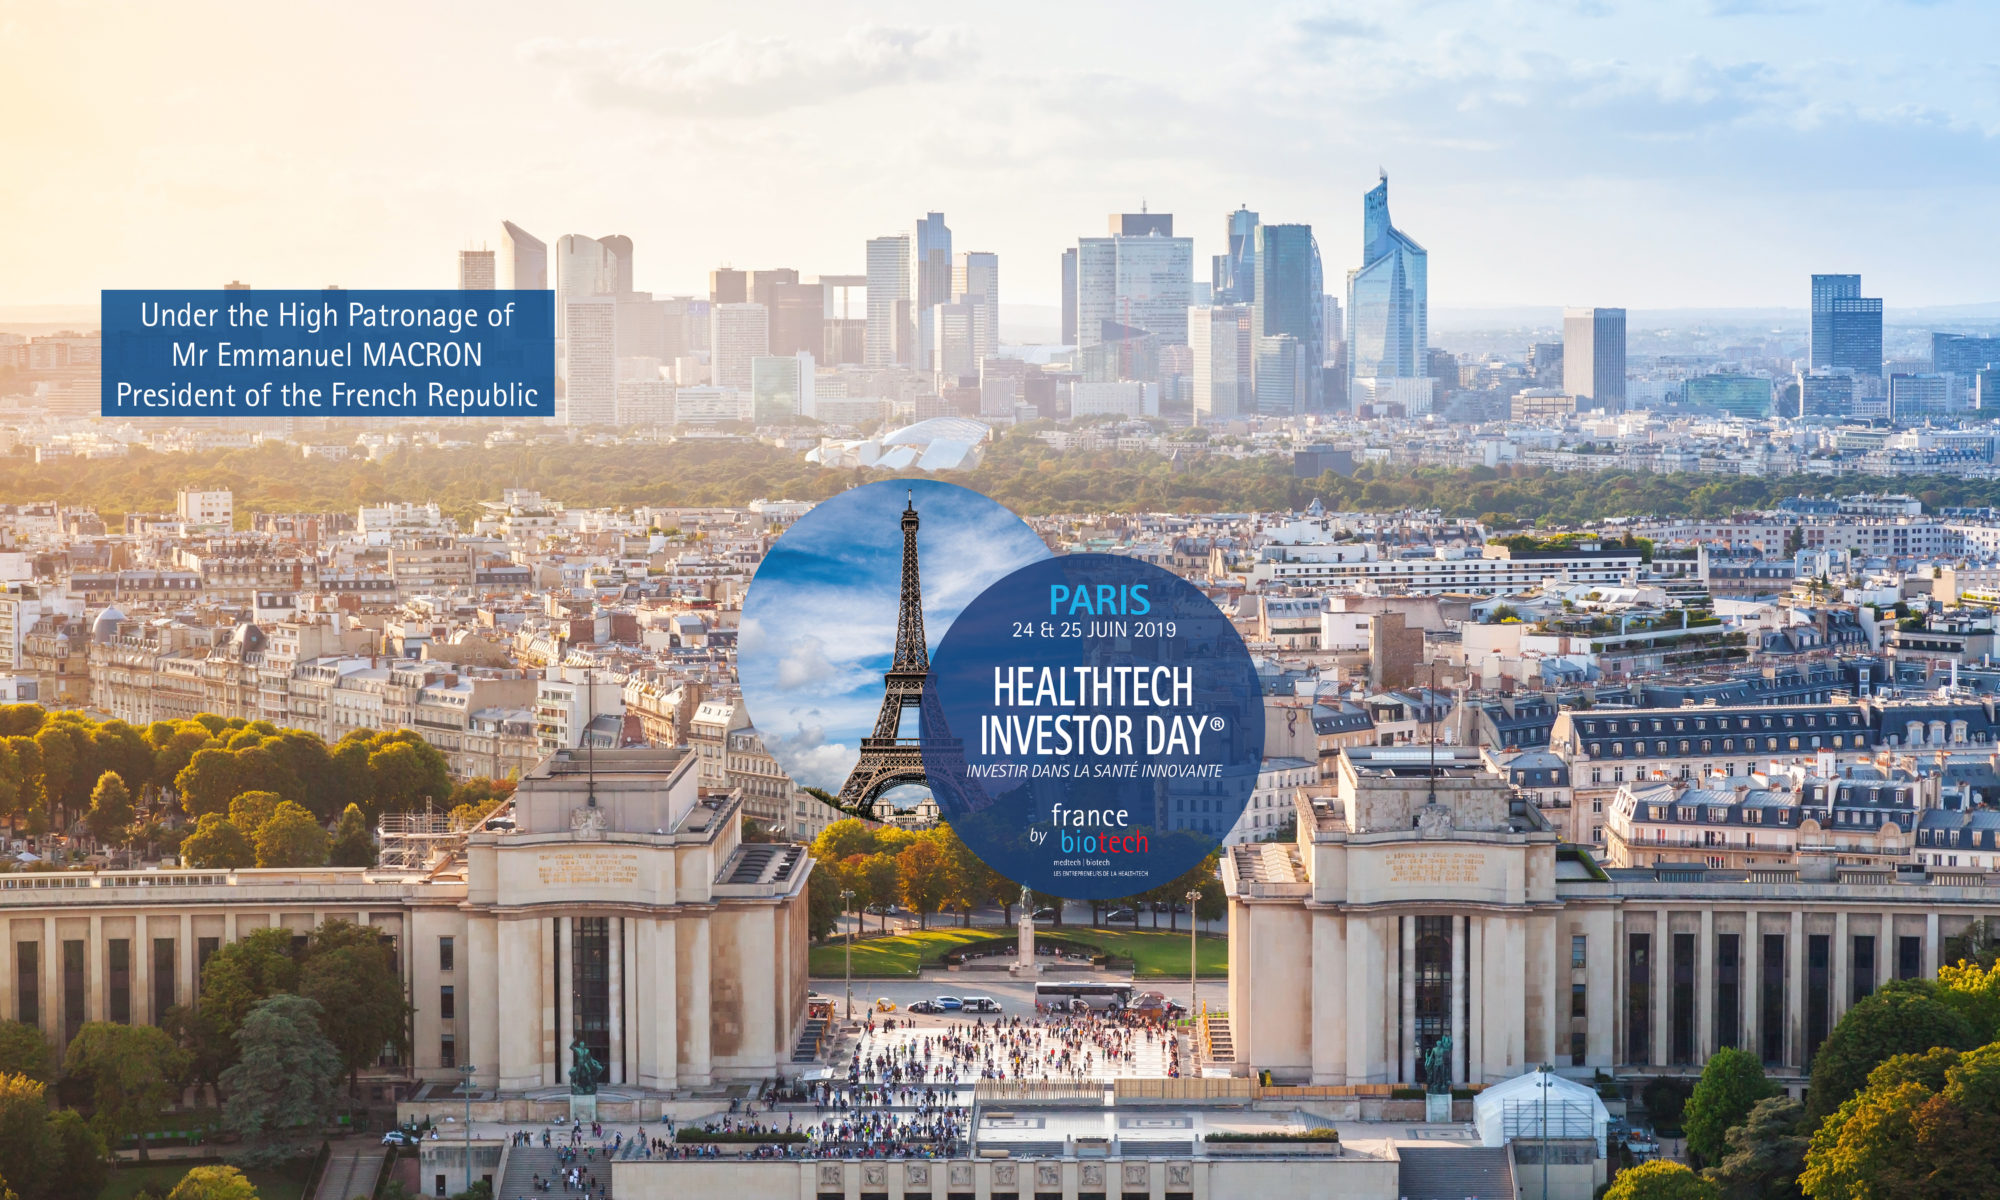 HealthTech Investor Day